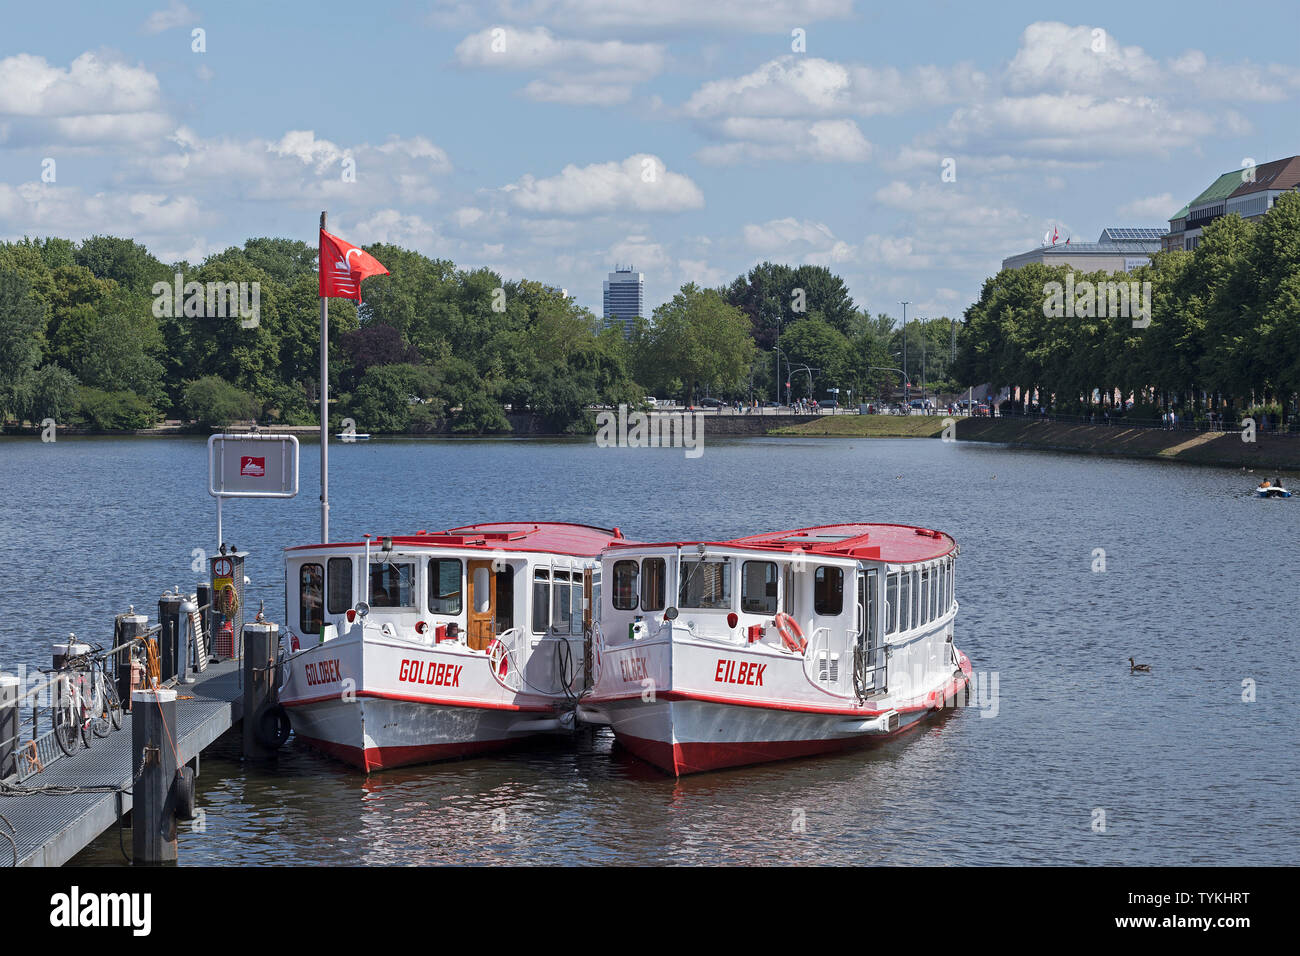 excursion boats, Inner Alster, Hamburg, Germany - Stock Image